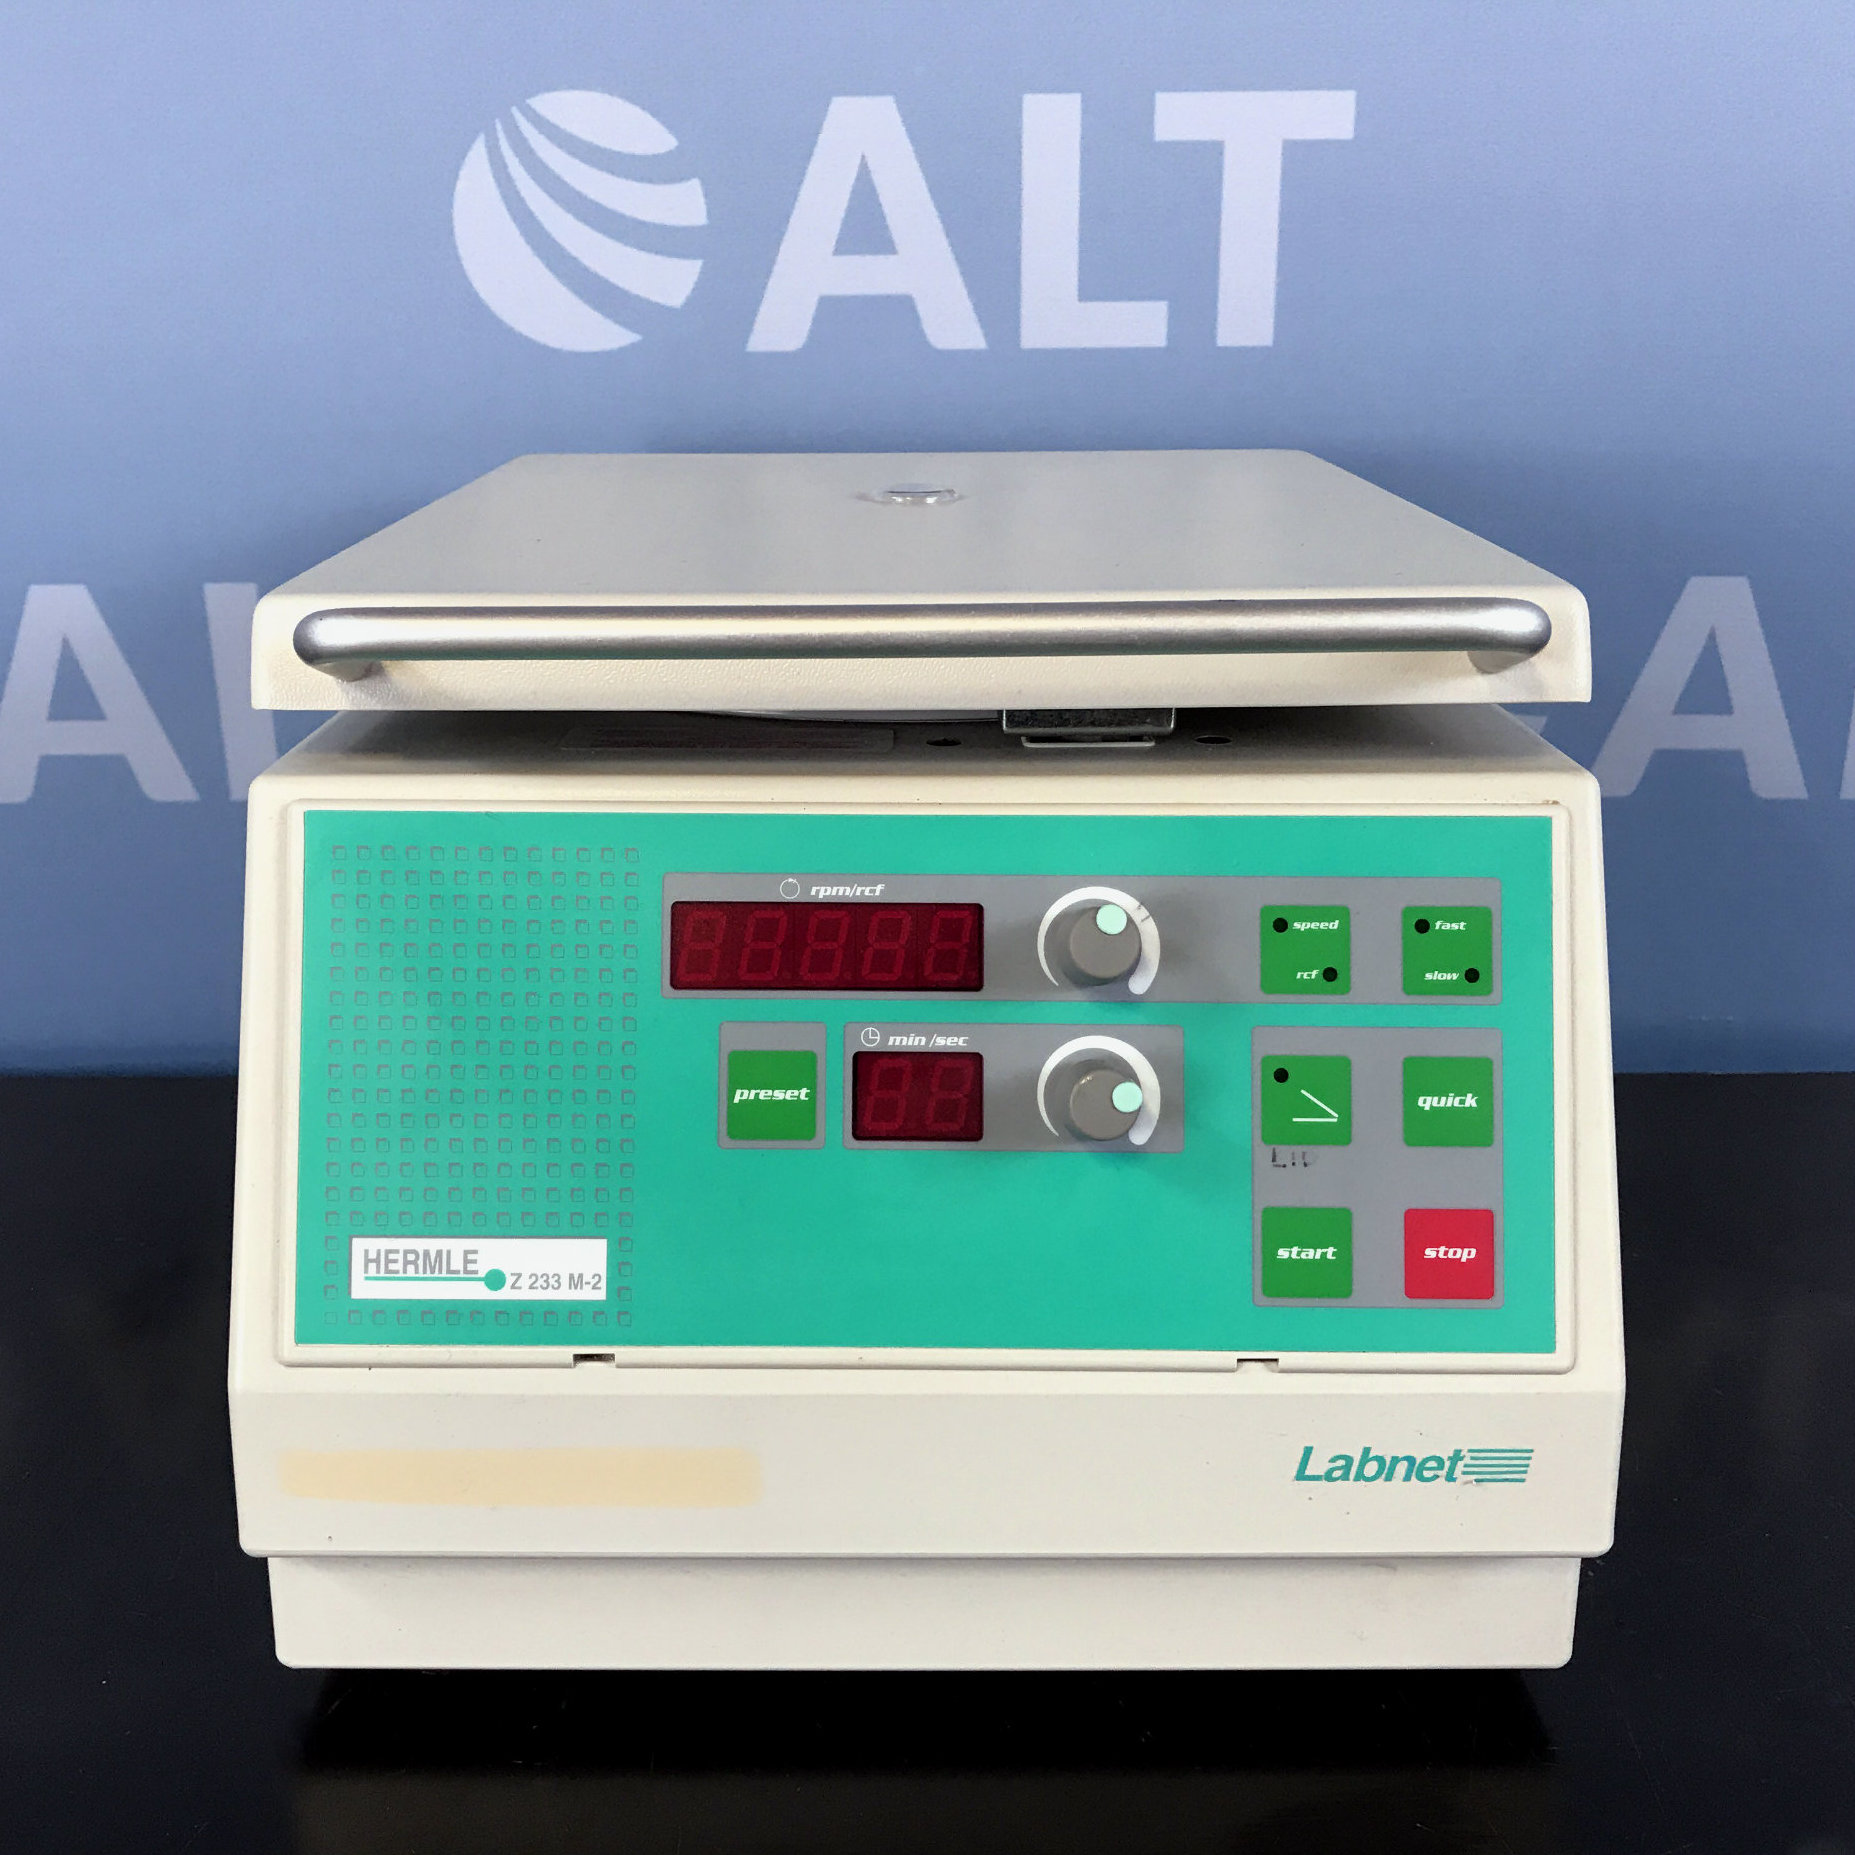 Labnet Z233 MK-2 High Performance Microcentrifuge Image